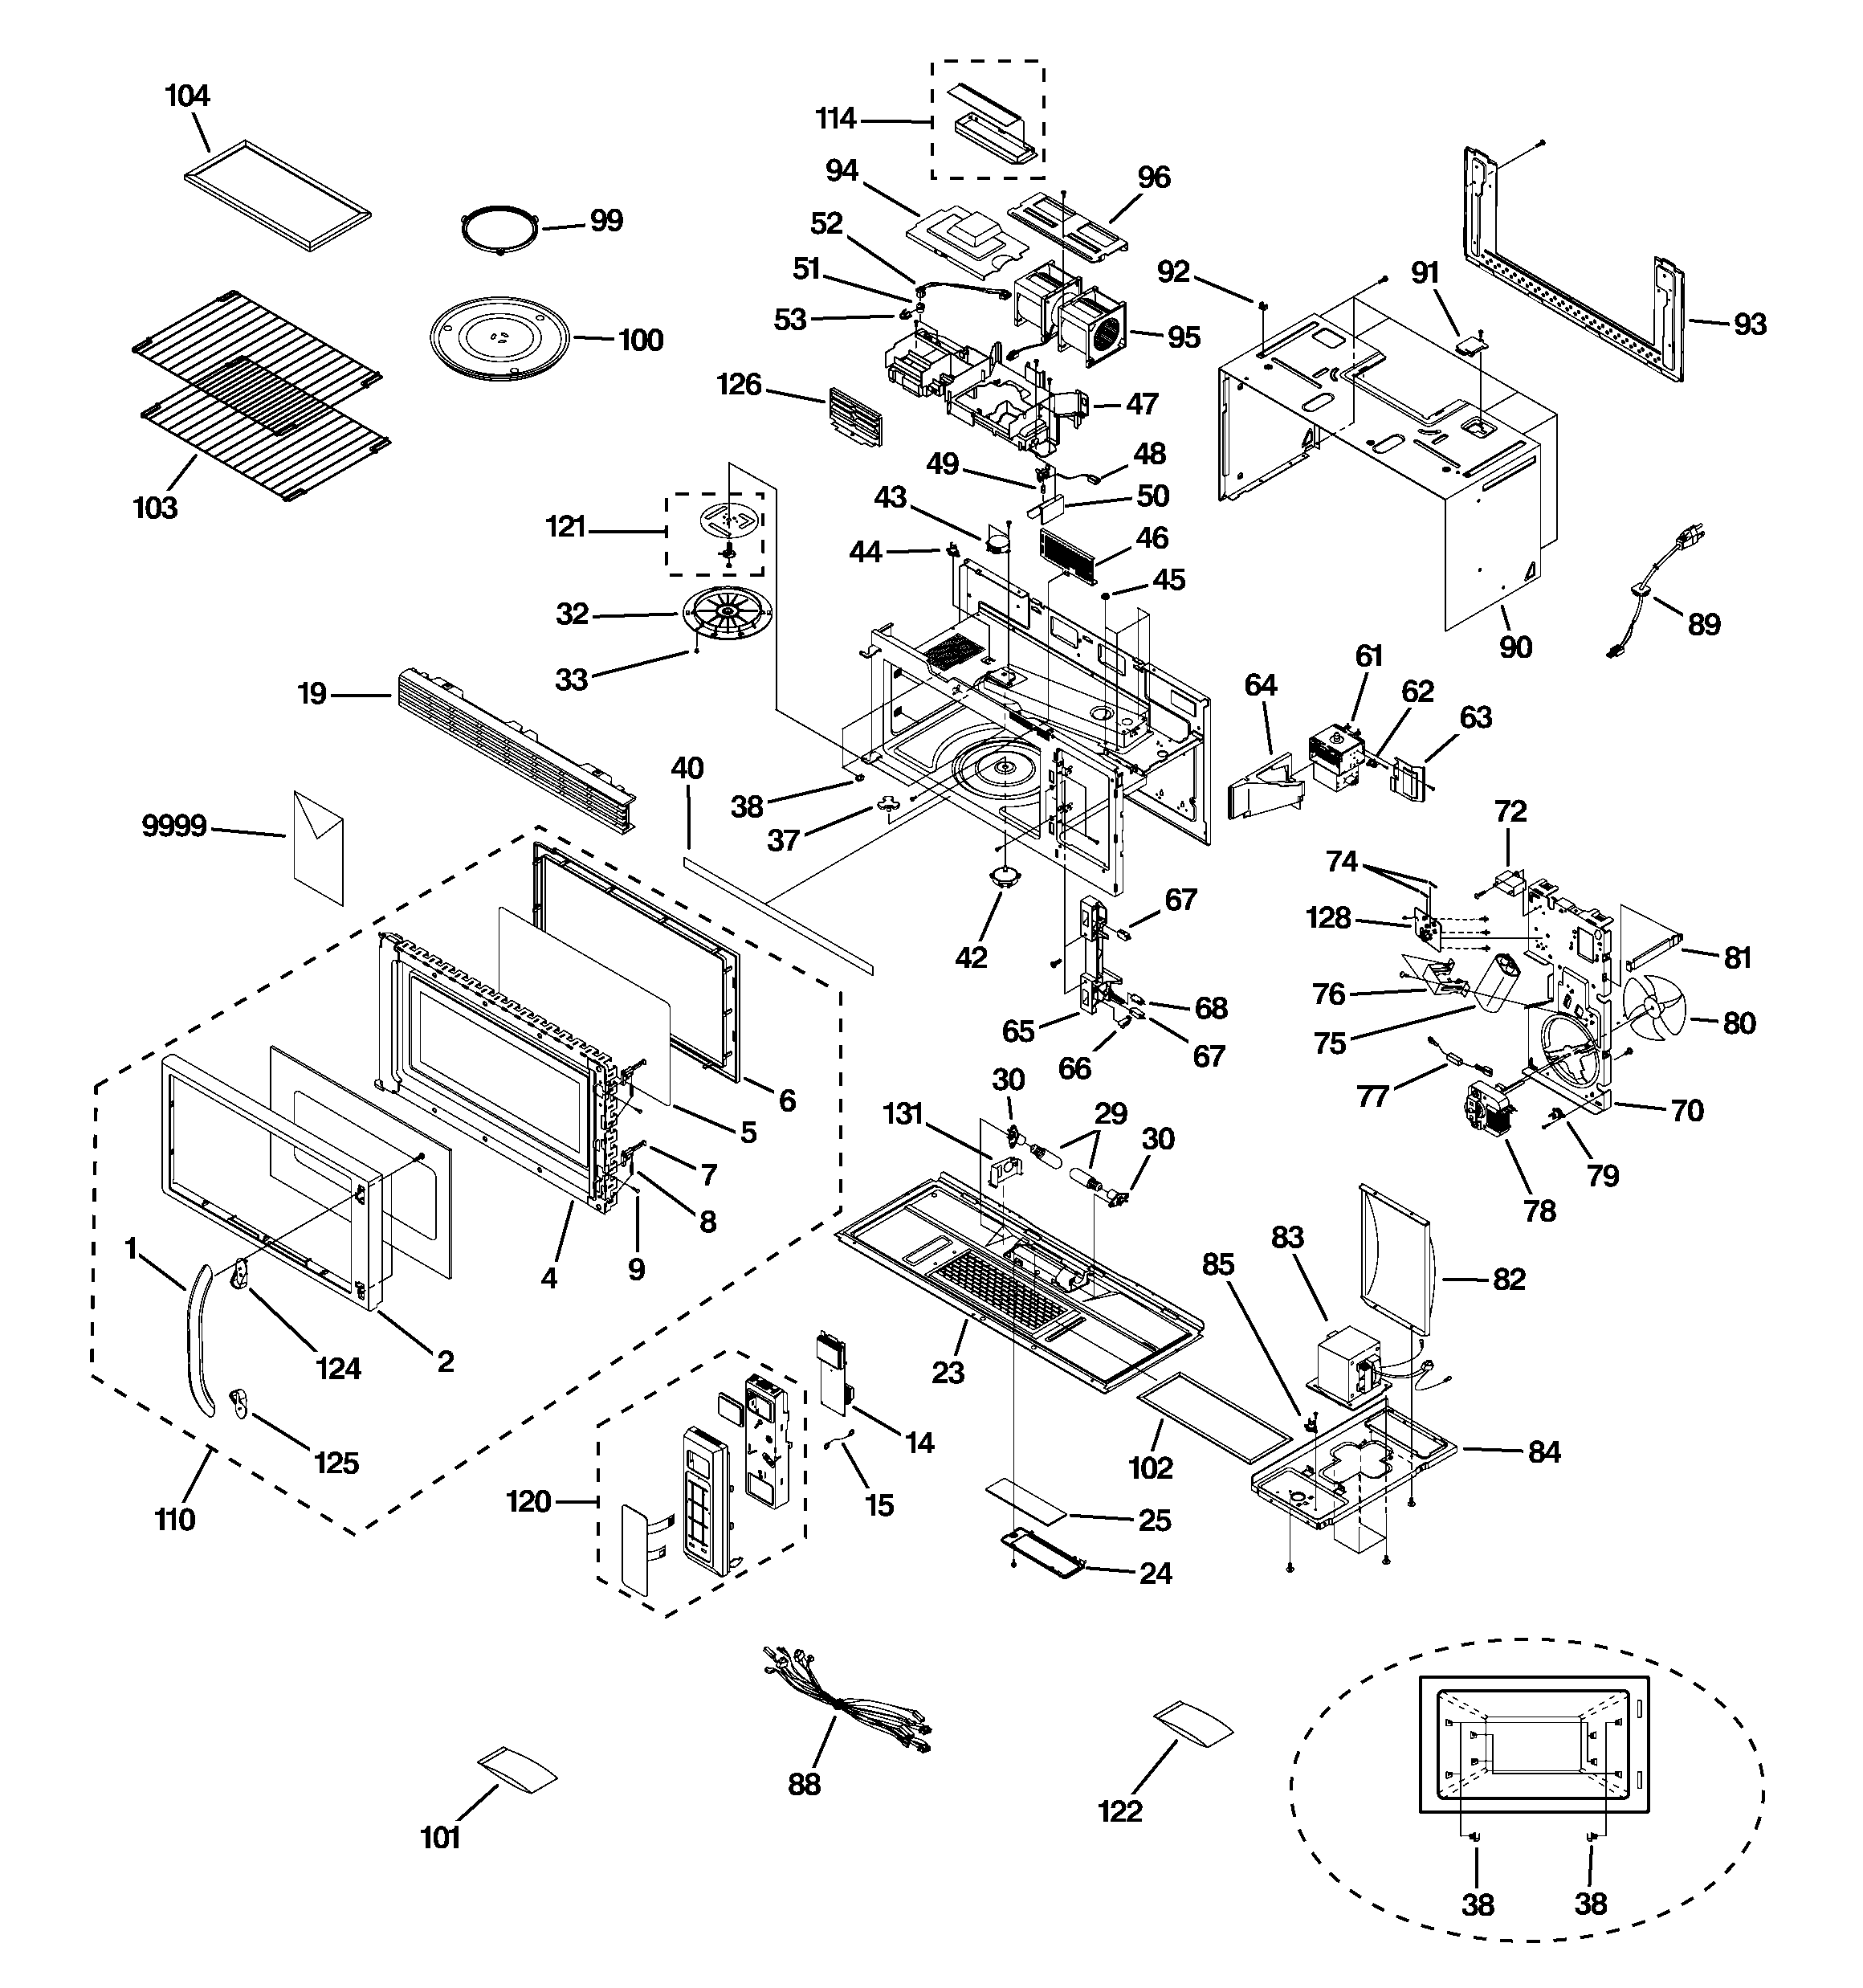 G0604228 00001?resize\\\\\\\\\\\\\\\\\\\\\\\\\\\\\\\=665%2C709 wiring diagram for range hood fan nautilus range hood wiring  at webbmarketing.co